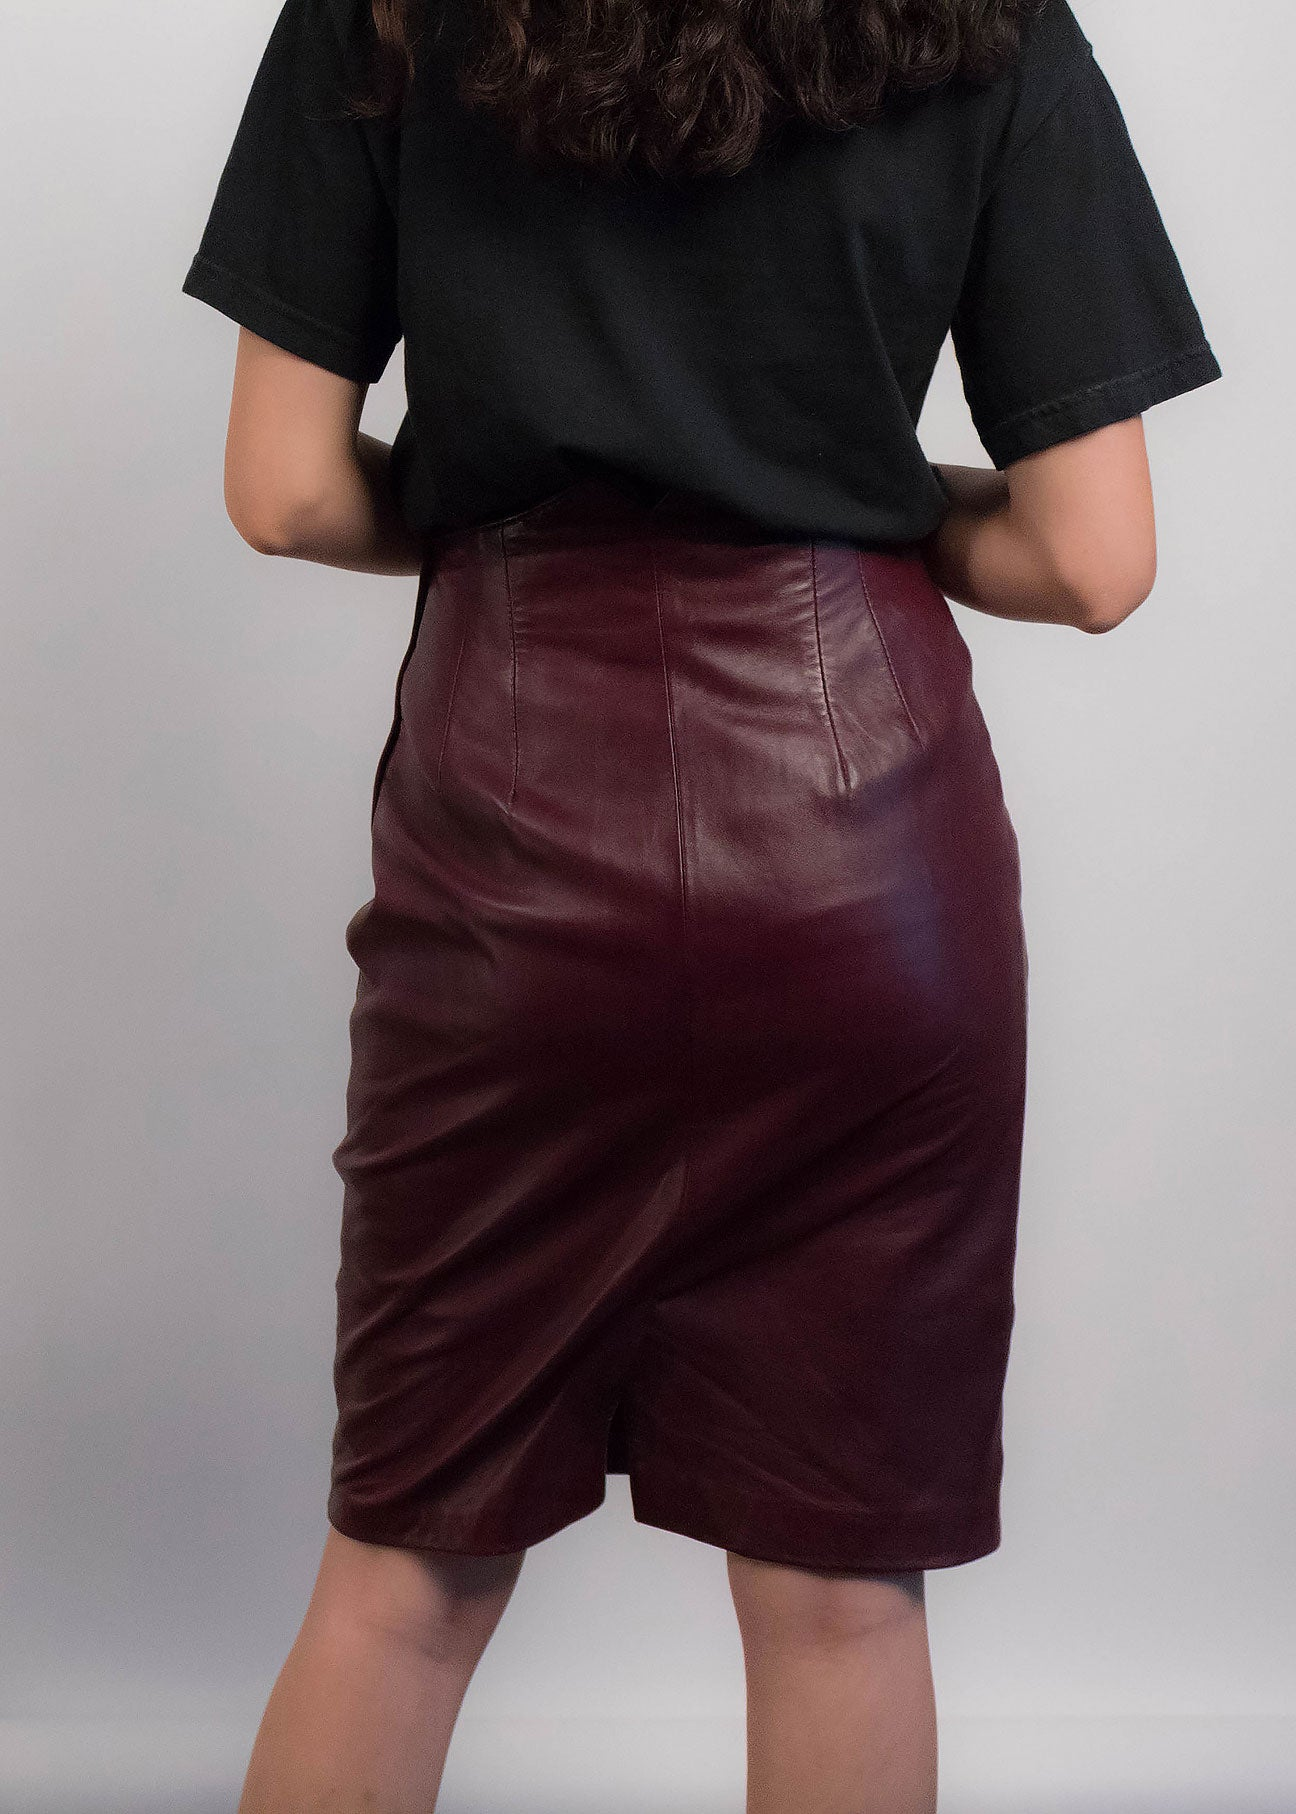 90s Leather Pencil Skirt